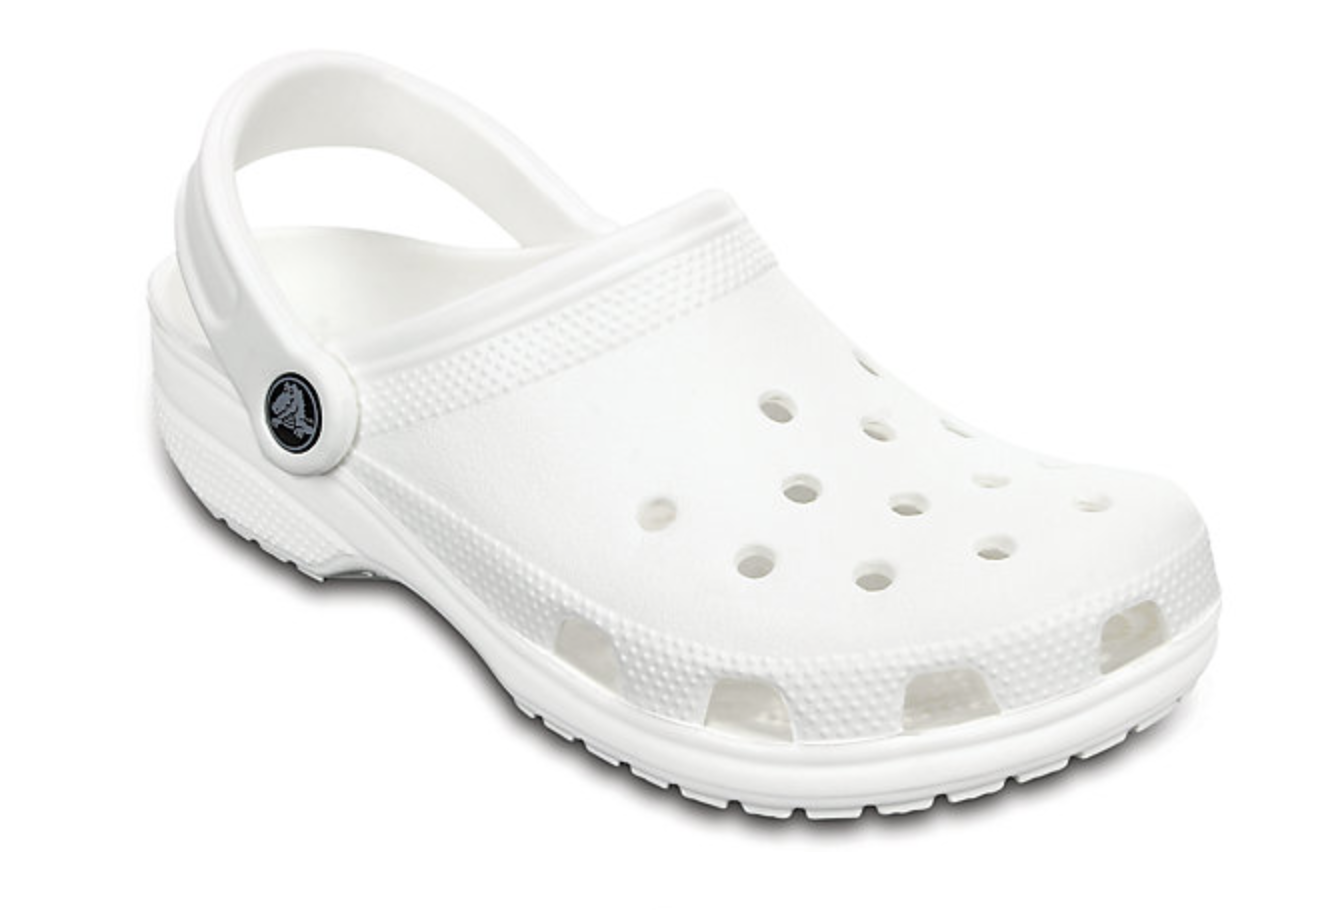 As Well The Standard Pair Of Crocs In Classic White Wedding Shoes Collection Includes Some Flats And Sandals That We Have To Admit Aren T Too Bad